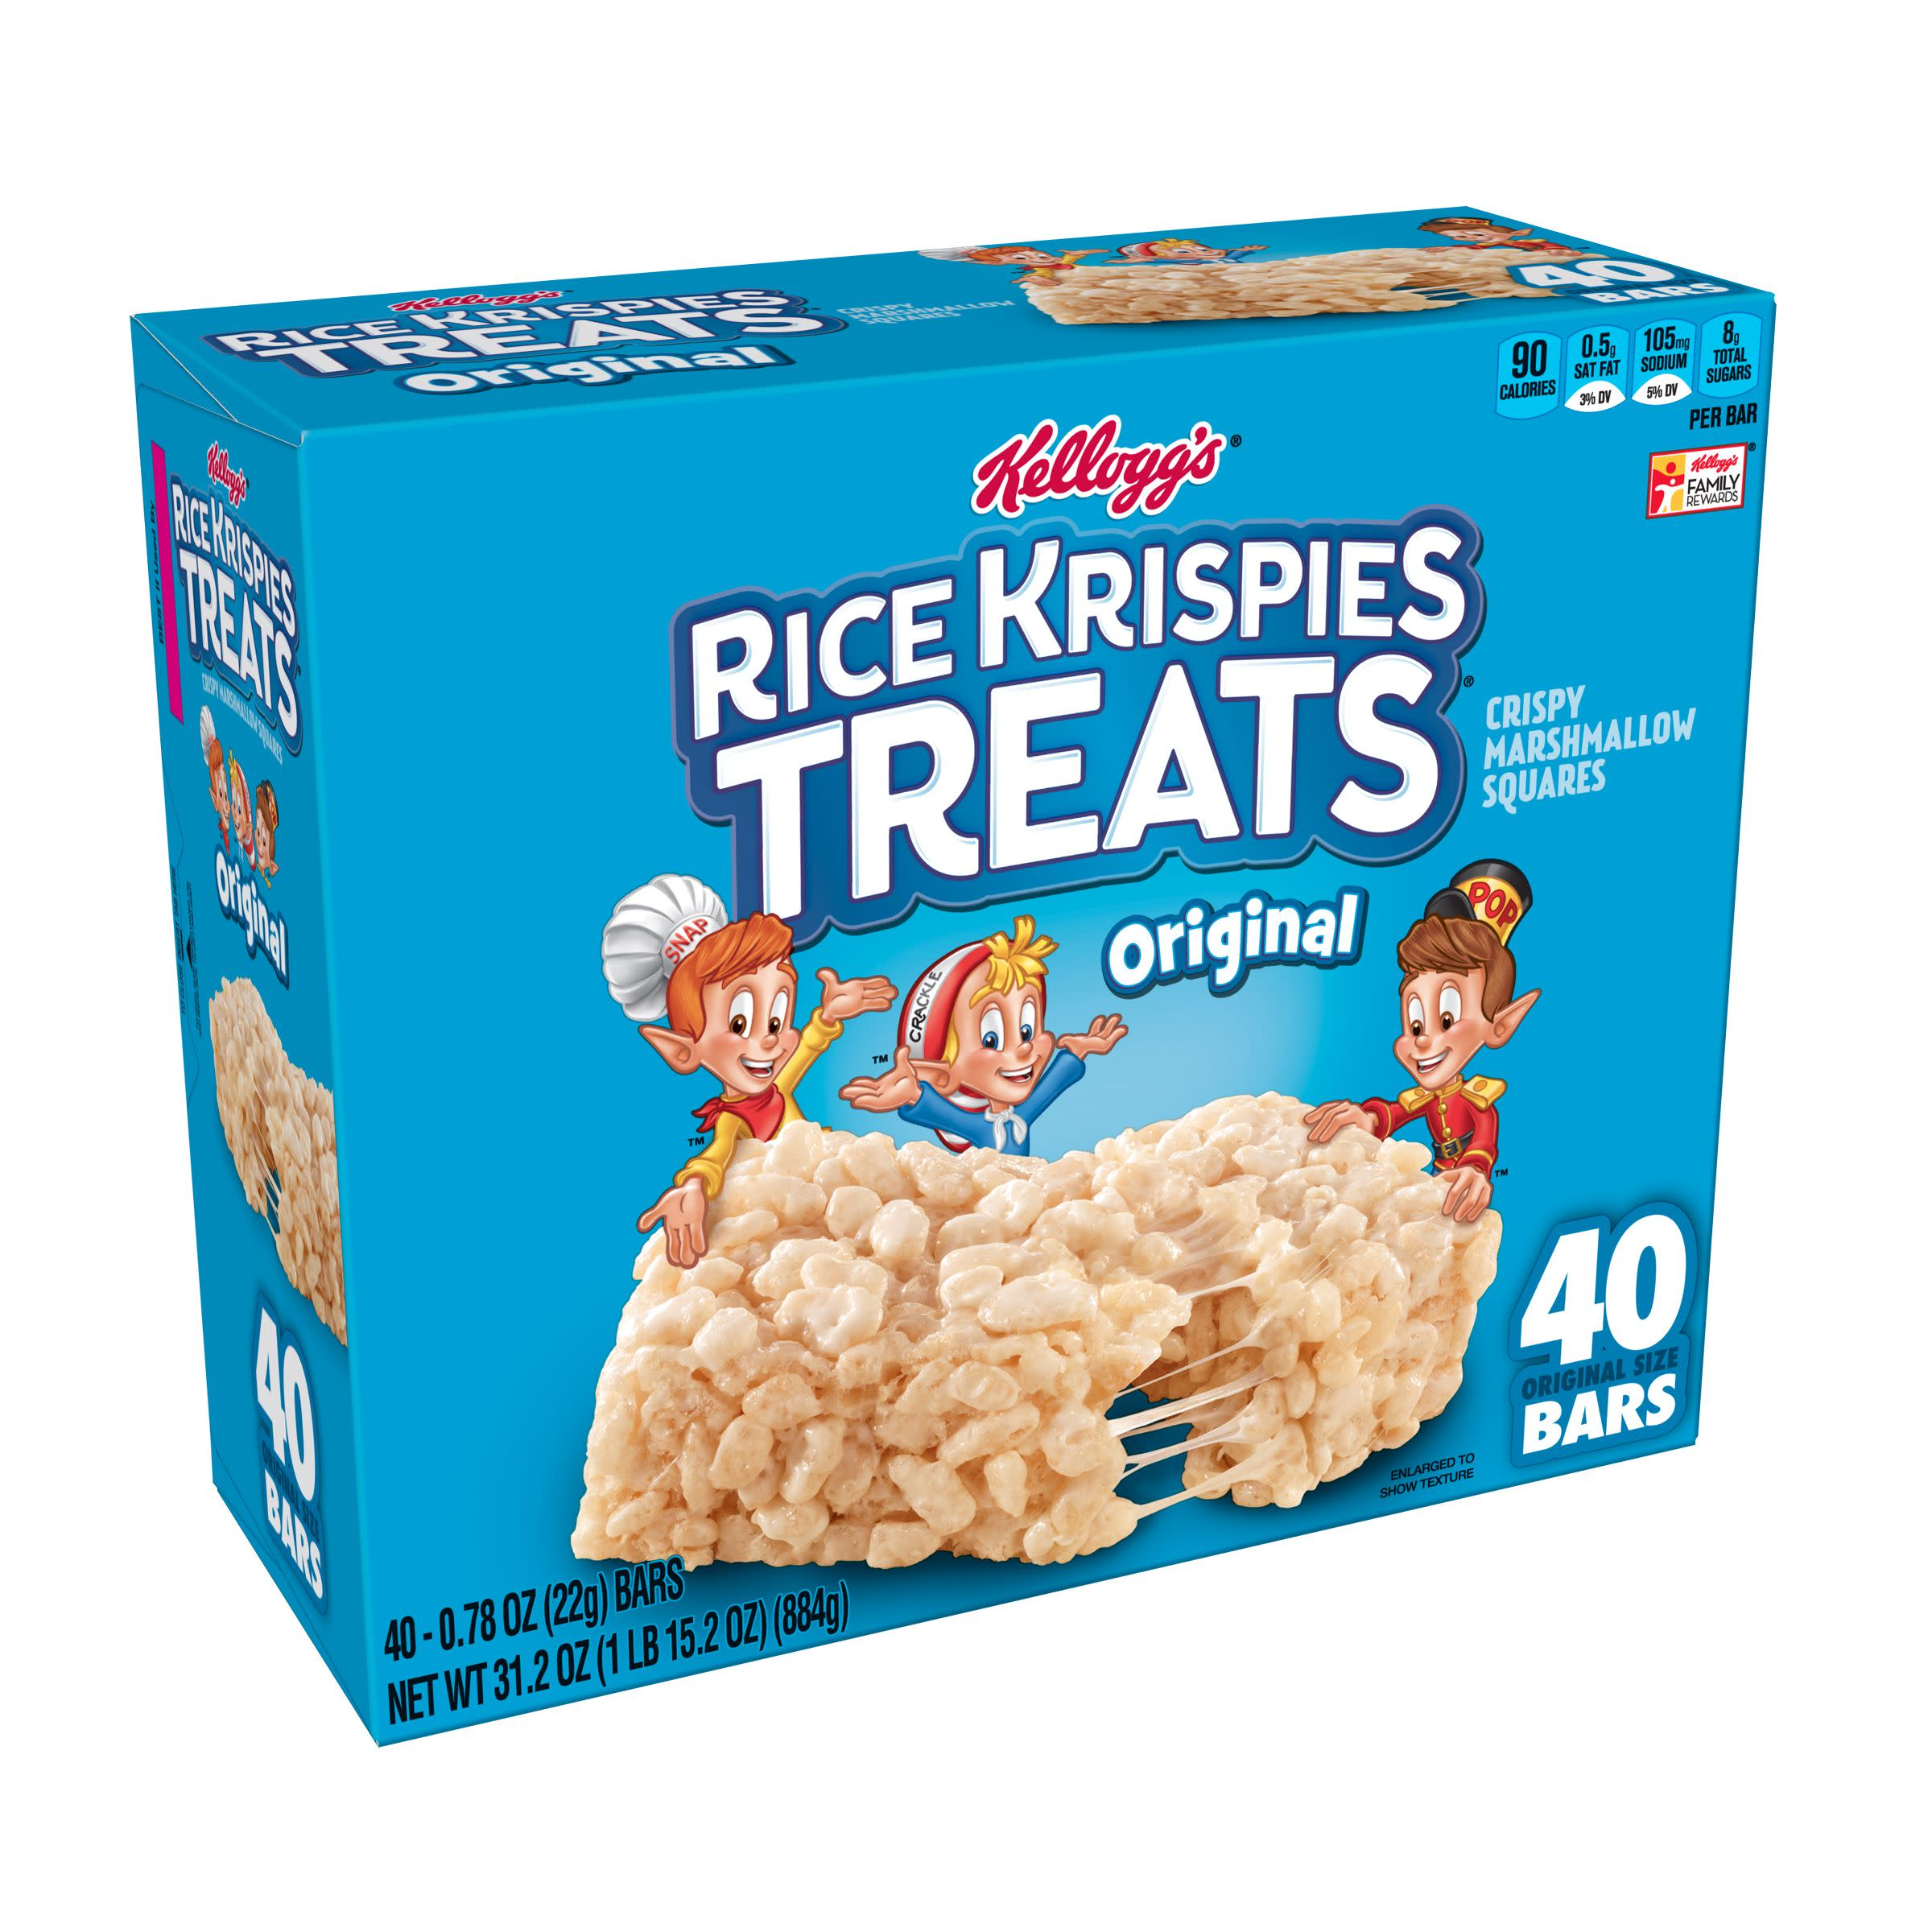 Kellogg's Rice Krispies Treats, Crispy Marshmallow Squares 0.78 oz Bars 40 Ct